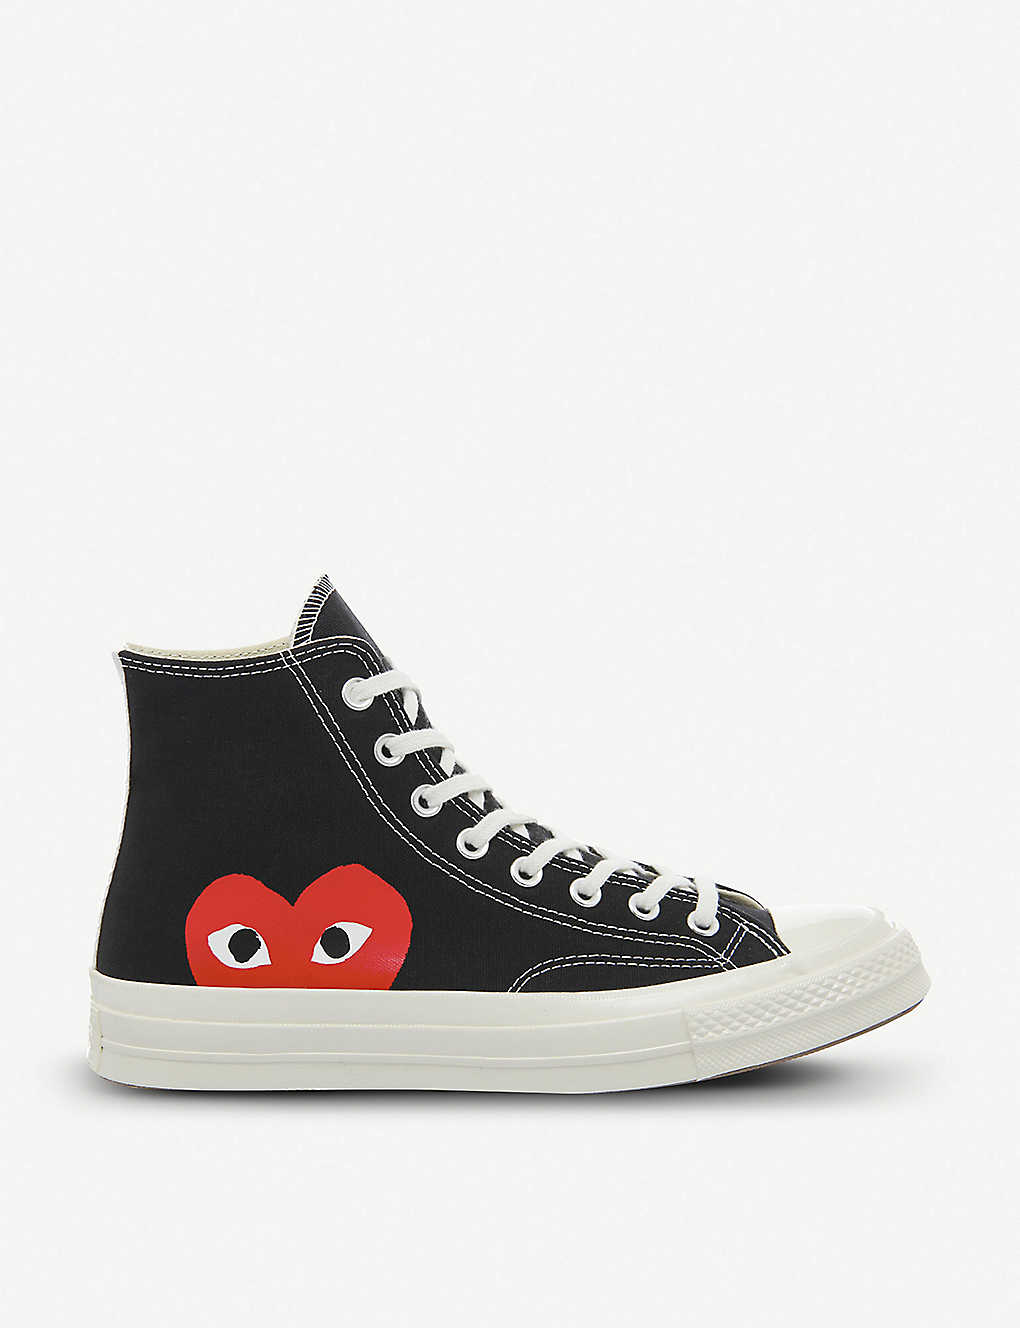 d9042d8bf350 COMME DES GARCONS - Converse high-top 70s x play cdg trainers ...